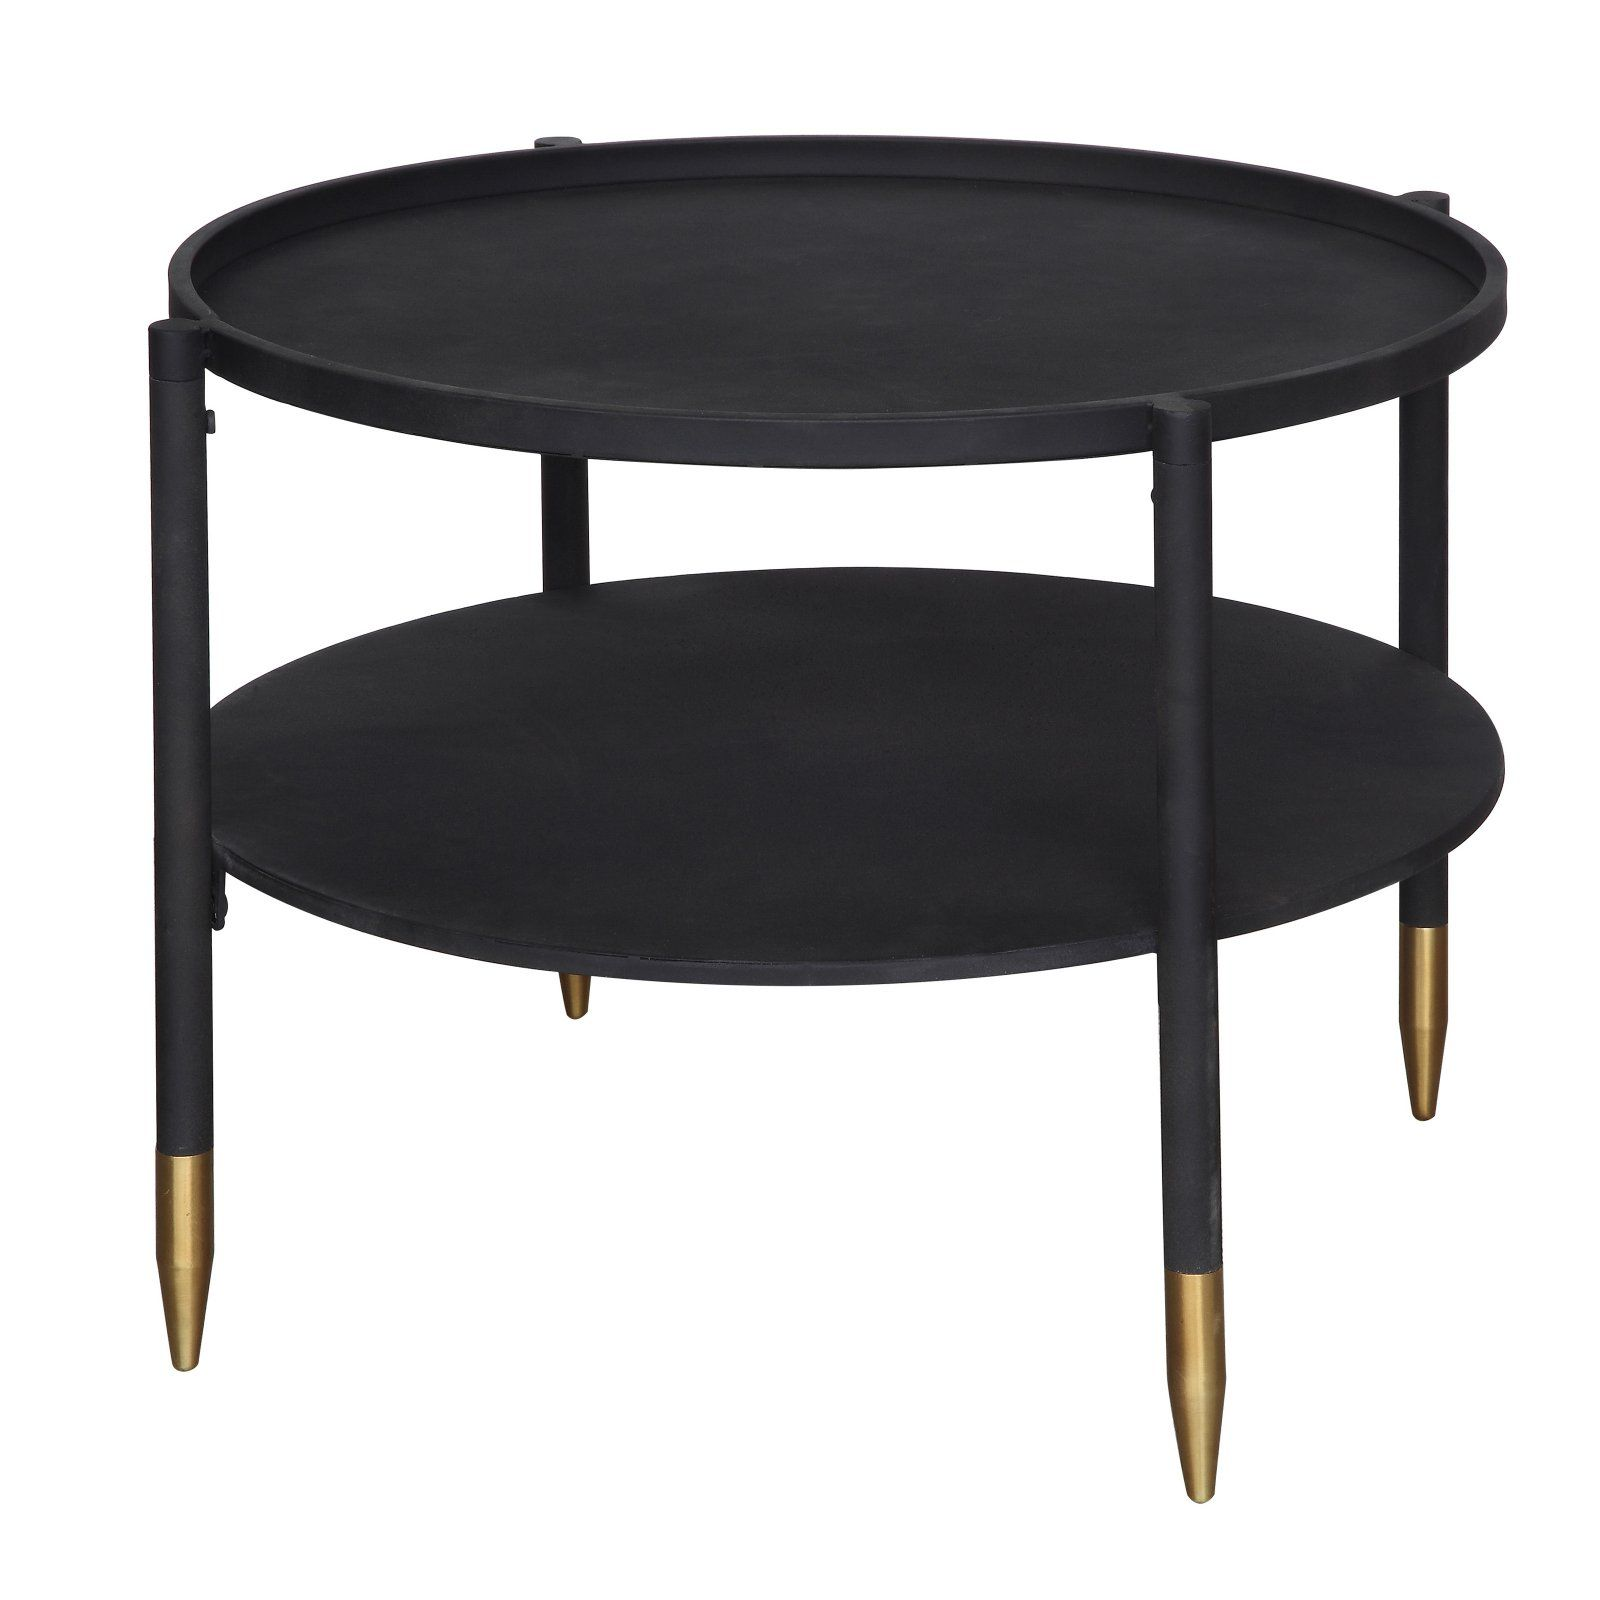 Sprinkle Bloom Round 2 Tier Black Metal Coffee Table With Gold Feet Walmart Com Coffee Table Metal Coffee Table Round Coffee Table [ 1600 x 1600 Pixel ]